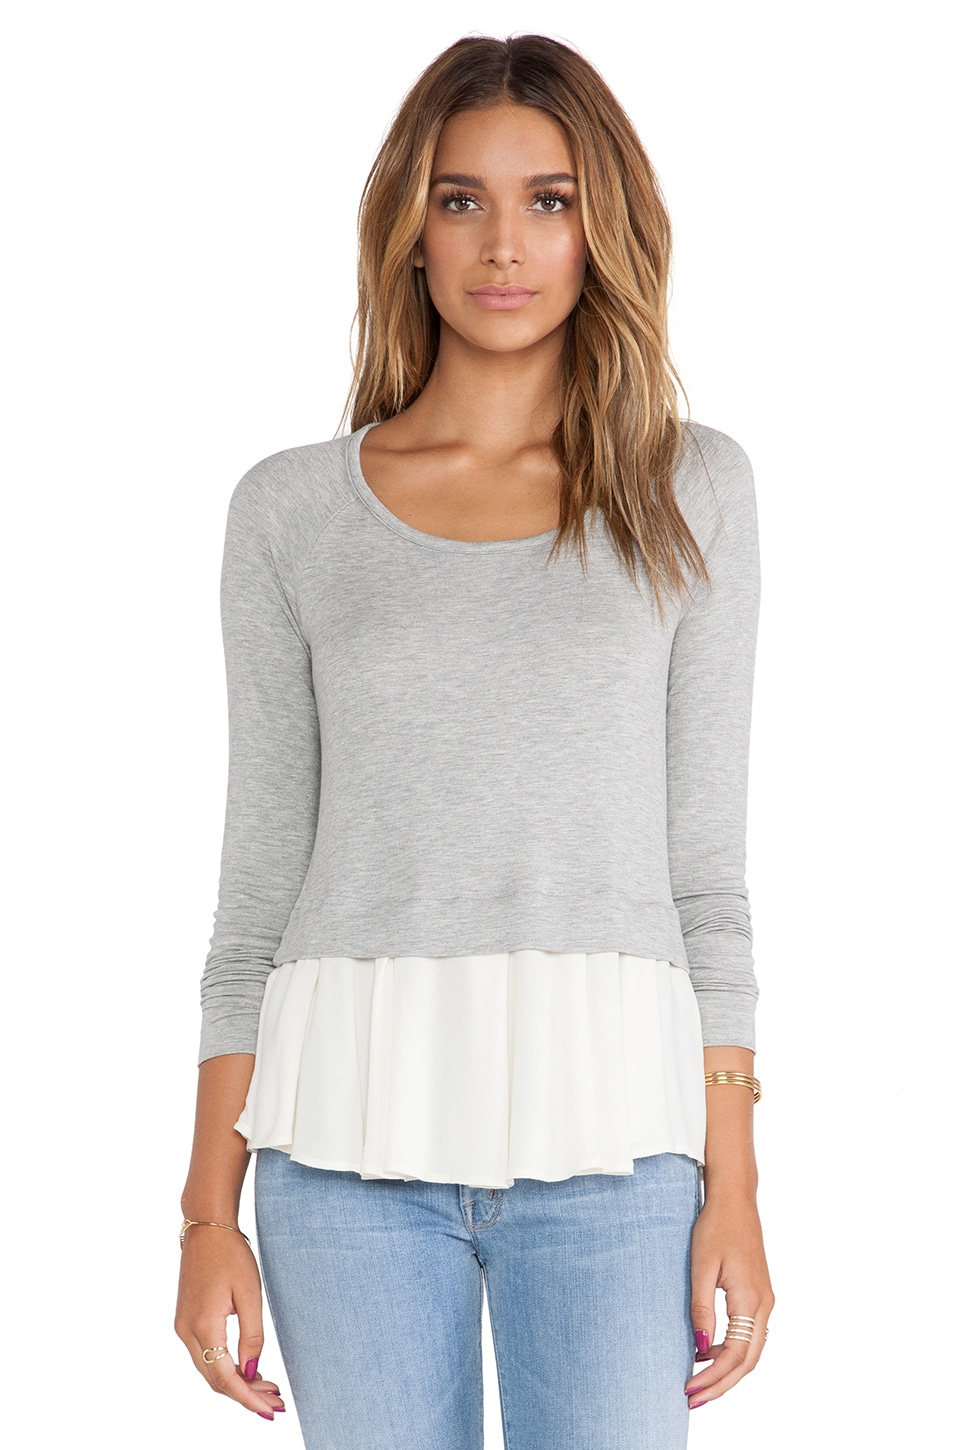 Ella Moss Stella Top in Heather Grey & Cream